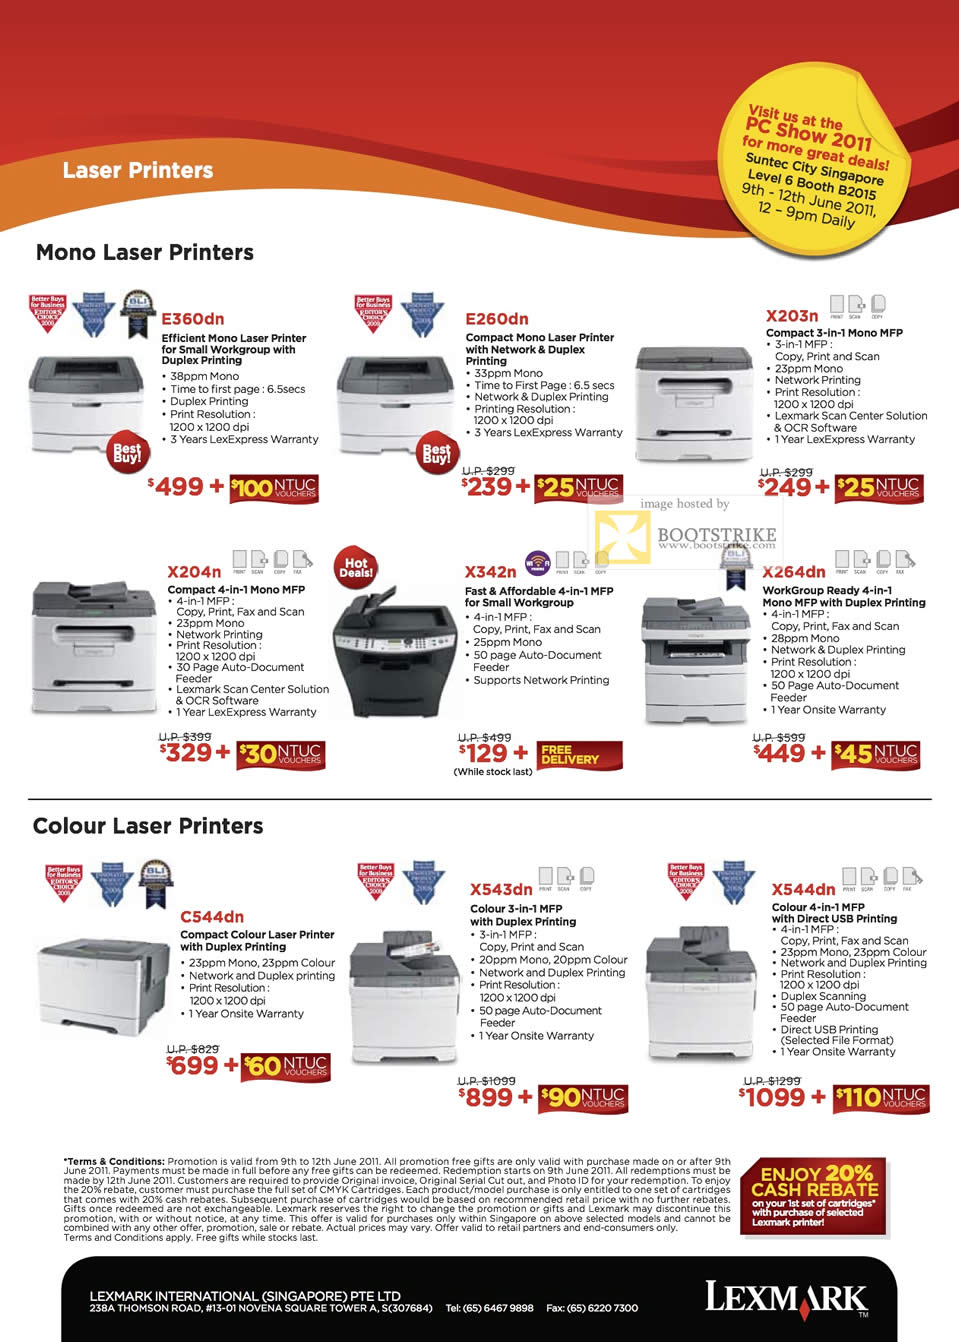 PC Show 2011 price list image brochure of Lexmark Printers Laser Mono E360dn E260dn X203n X204n X342n X264dn Colour C544dn X543dn X544dn Workgroup USB Network